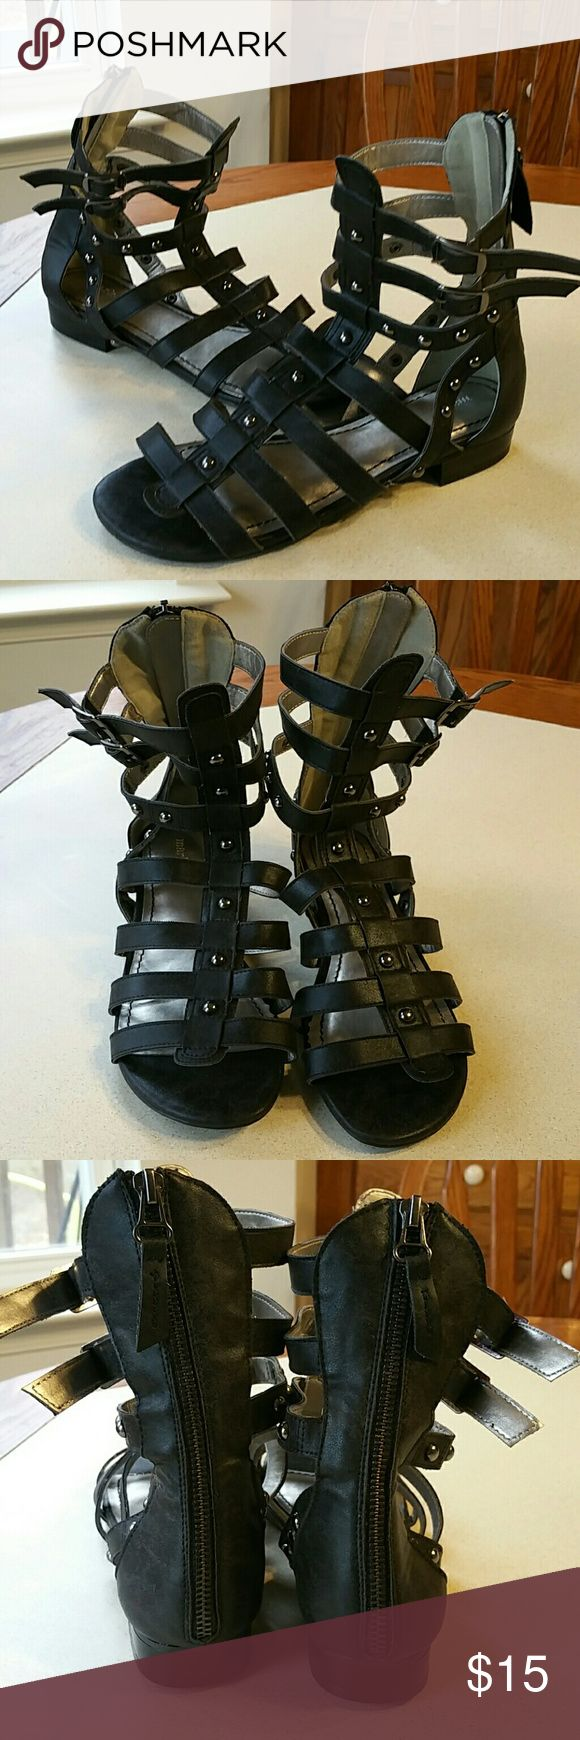 JUST IN. Faux leather gladiator sandals.NWOT sz 7 Cute, new, never worn. No box. Zippers up the back. Size 7. Man made faux leather. Lots of cute pewter studs on straps. Great for summer!! Boutique Shoes Sandals